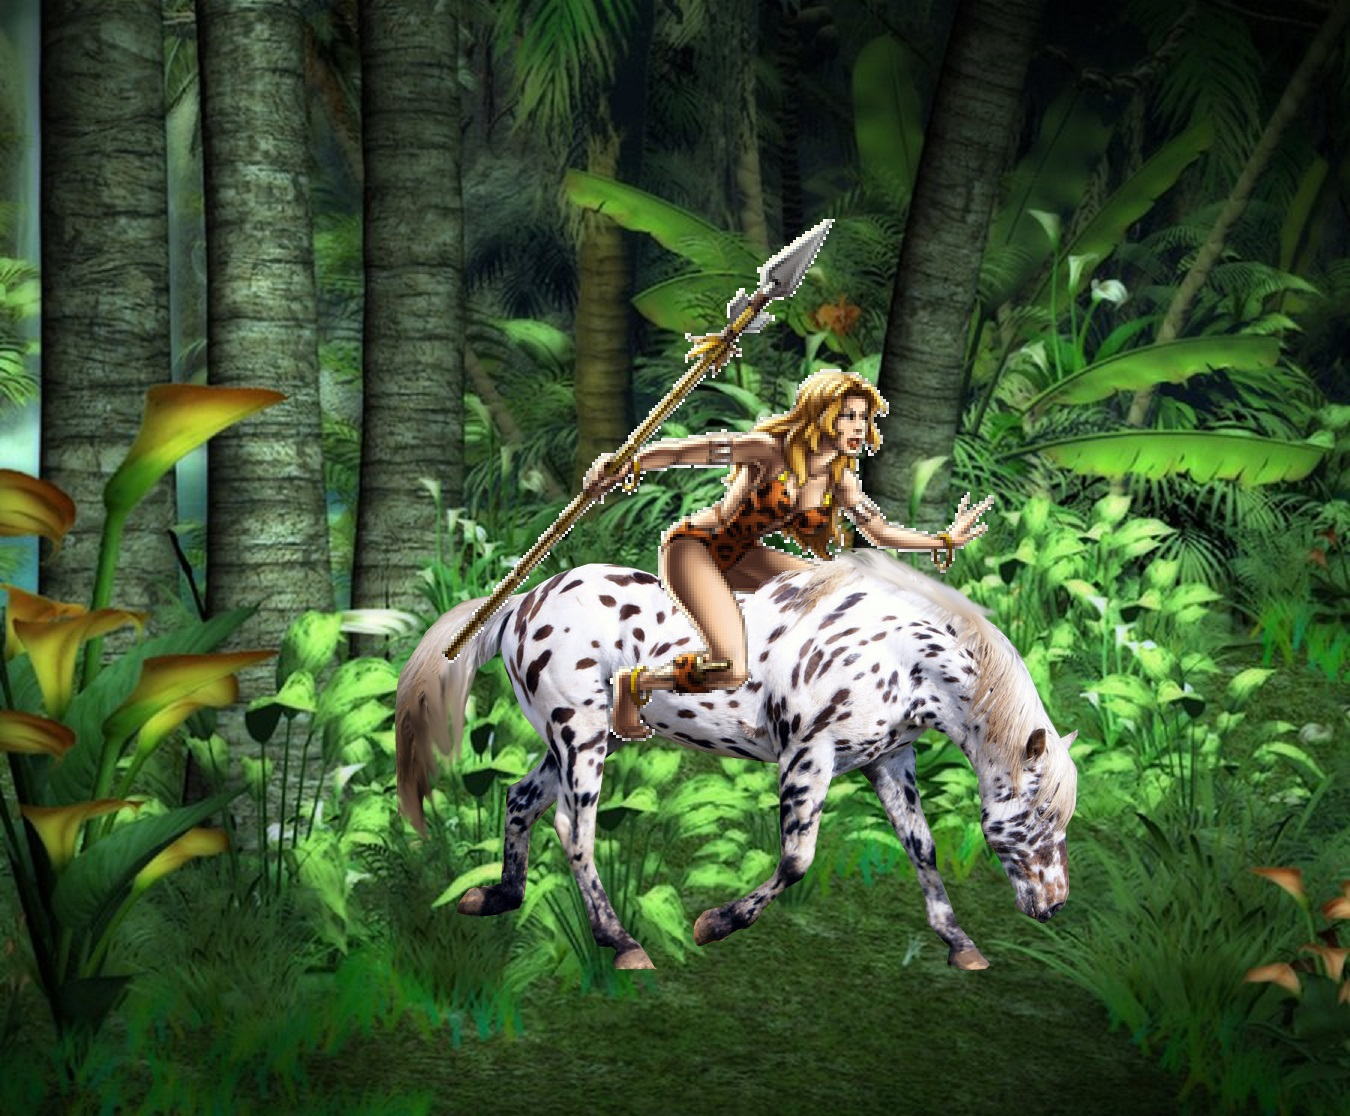 jungle girls images jungle girl shanna rides on her horse